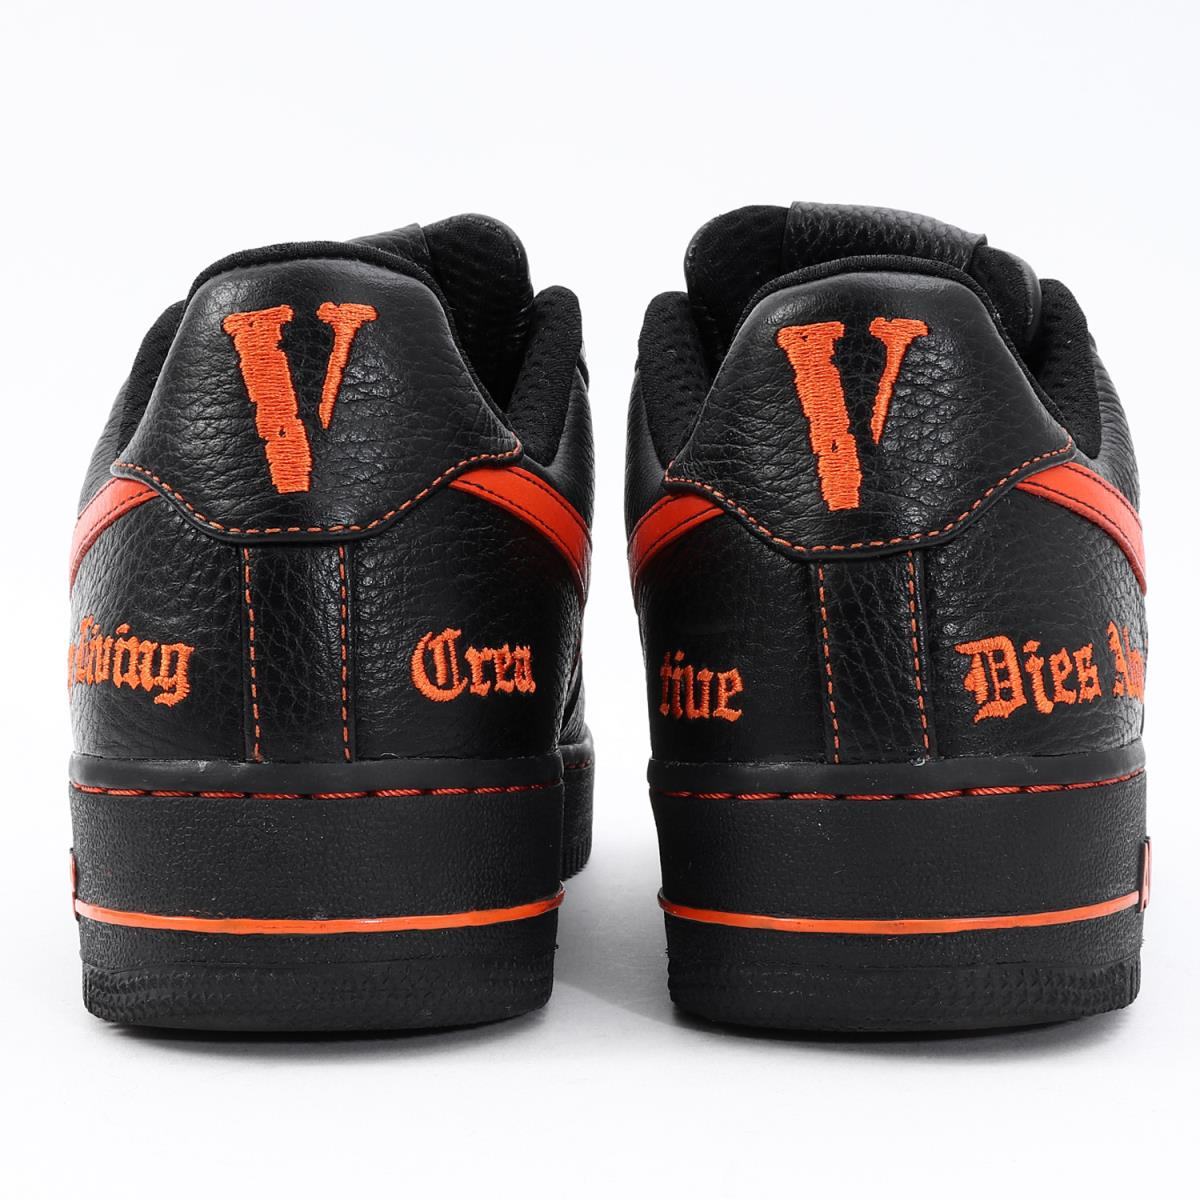 finest selection 67eda ea392 VLONE (VLONE) 17SS X NIKE AIR FORCE 1 LOW (AA5360-001) black X orange  US9(27cm)